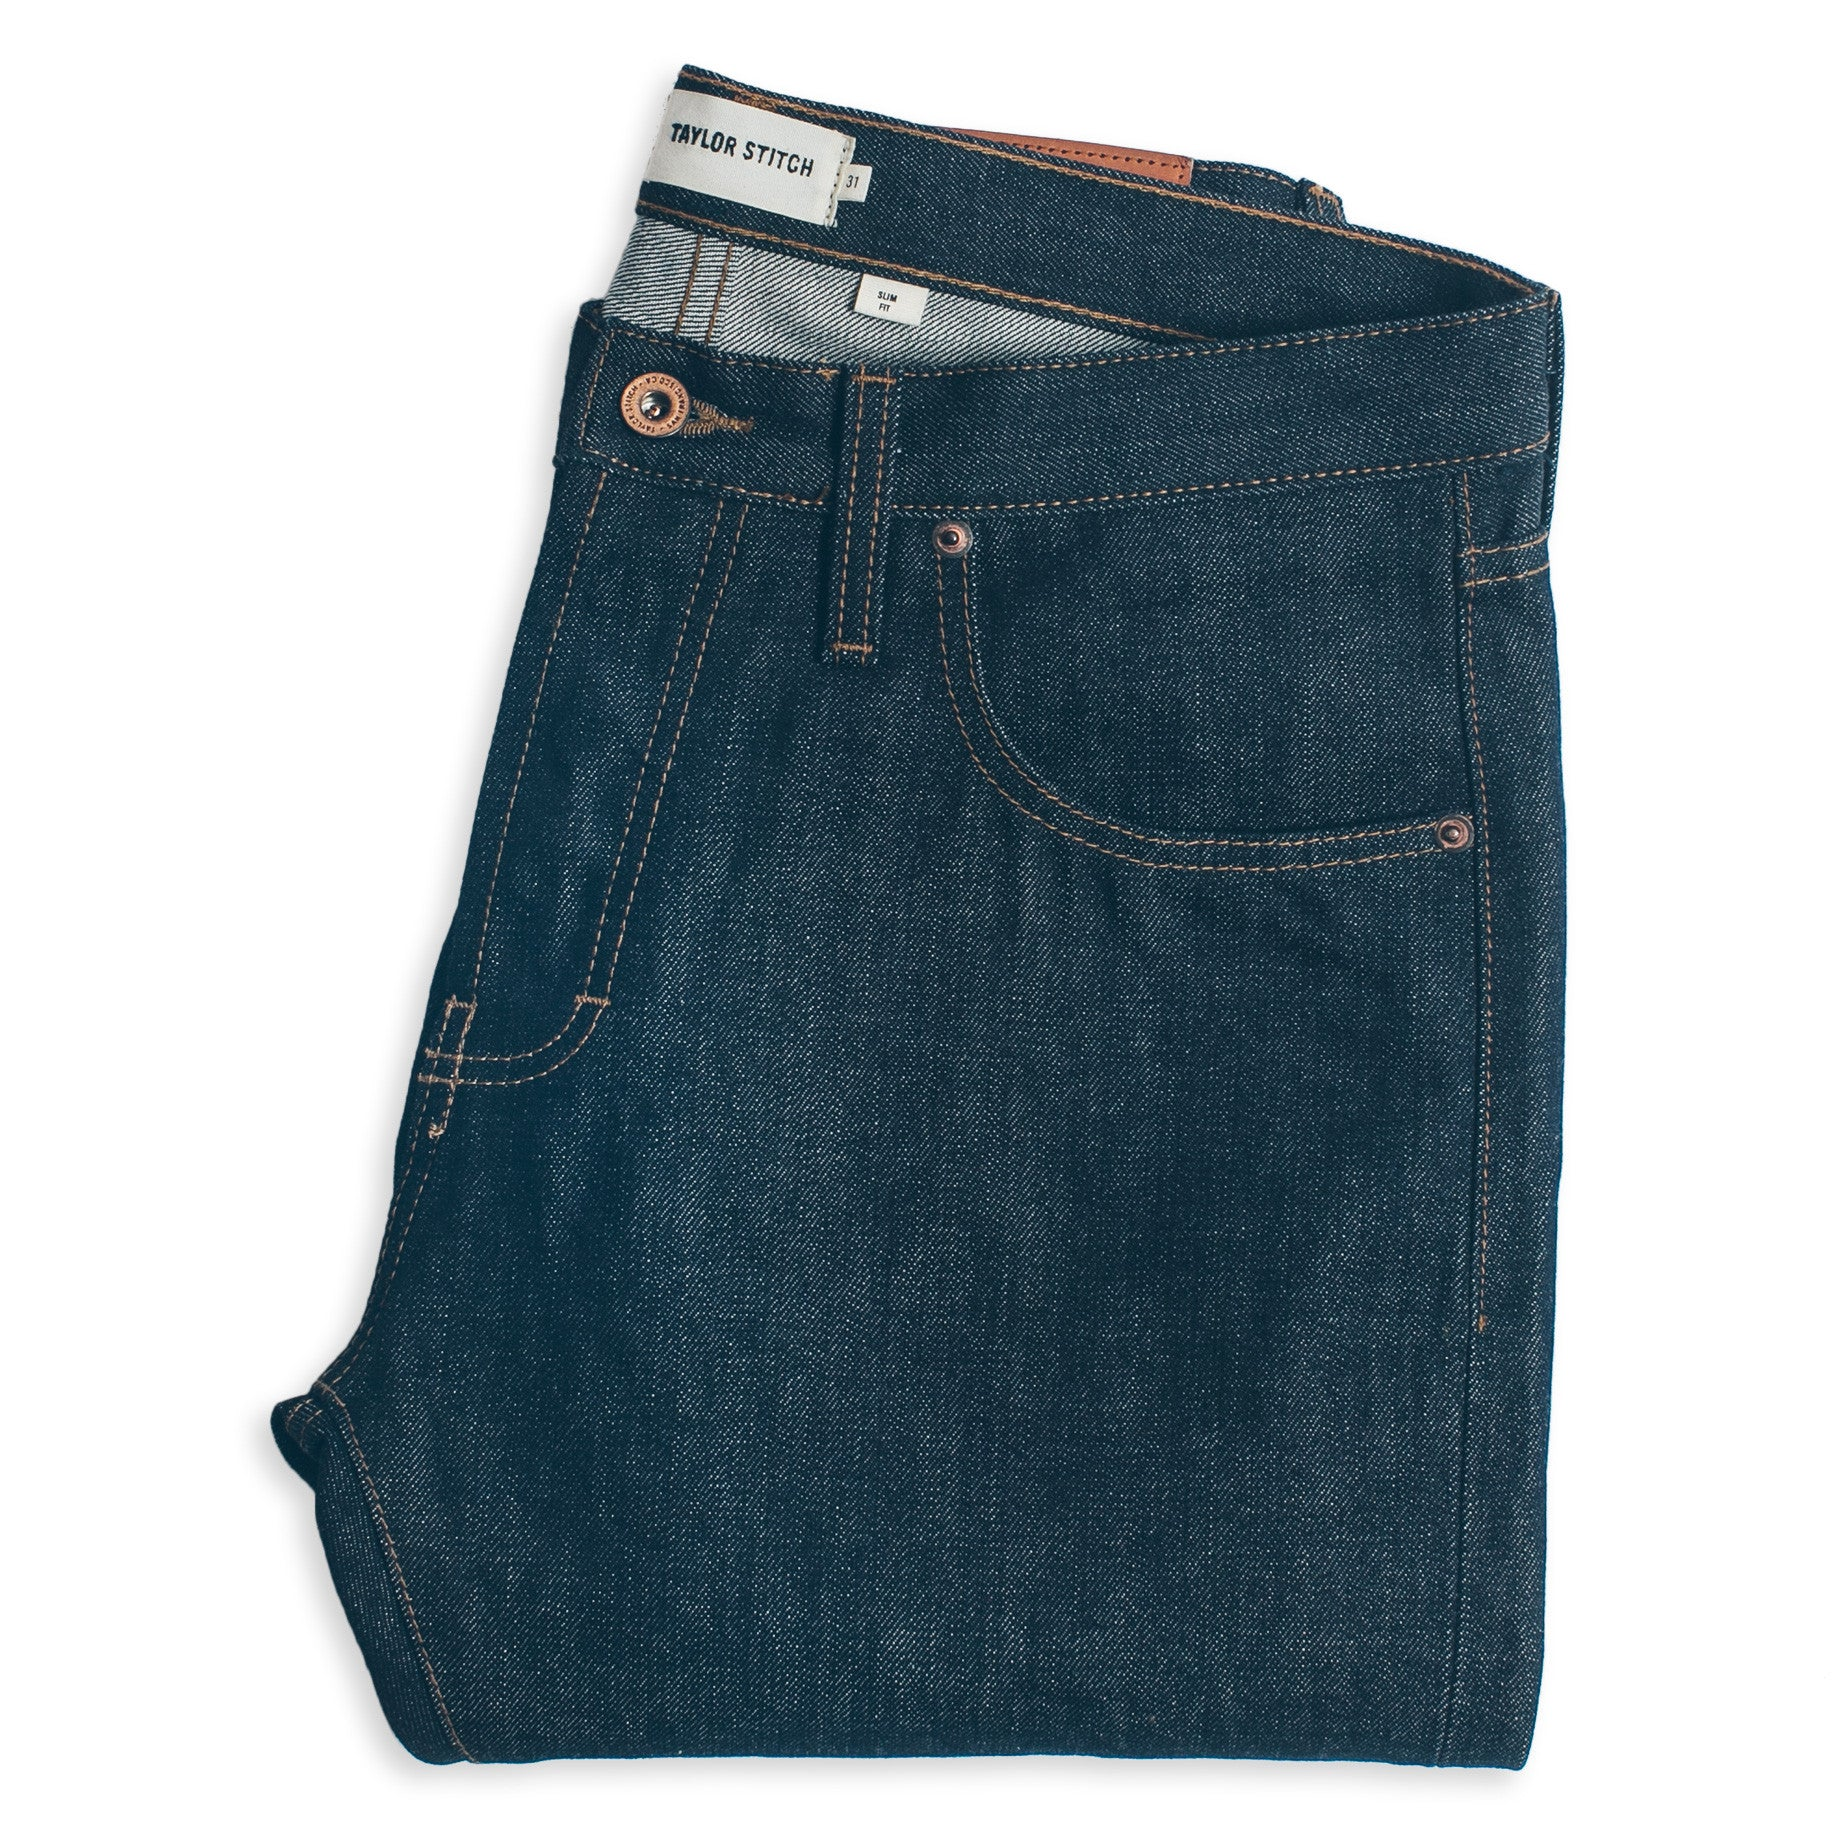 Image of THE SLIM JEAN<br> IN CONE MILLS '68 SELVAGE